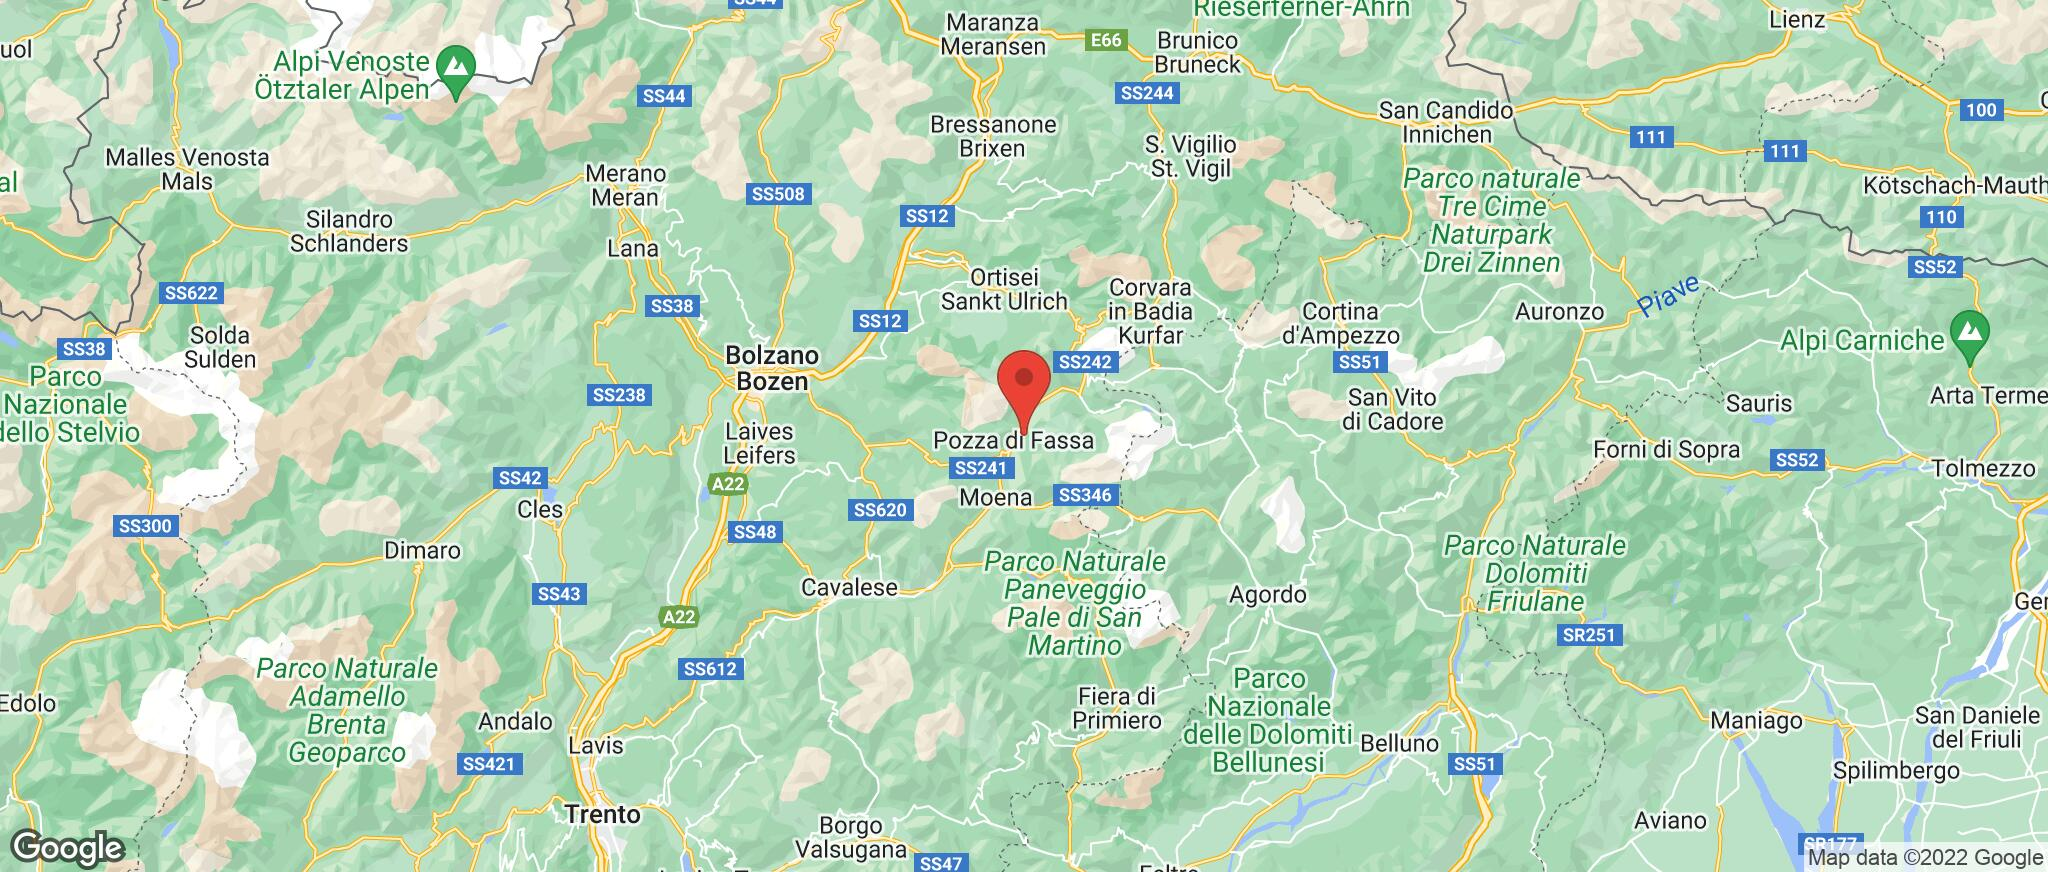 Map showing the location of Val Di Fassa